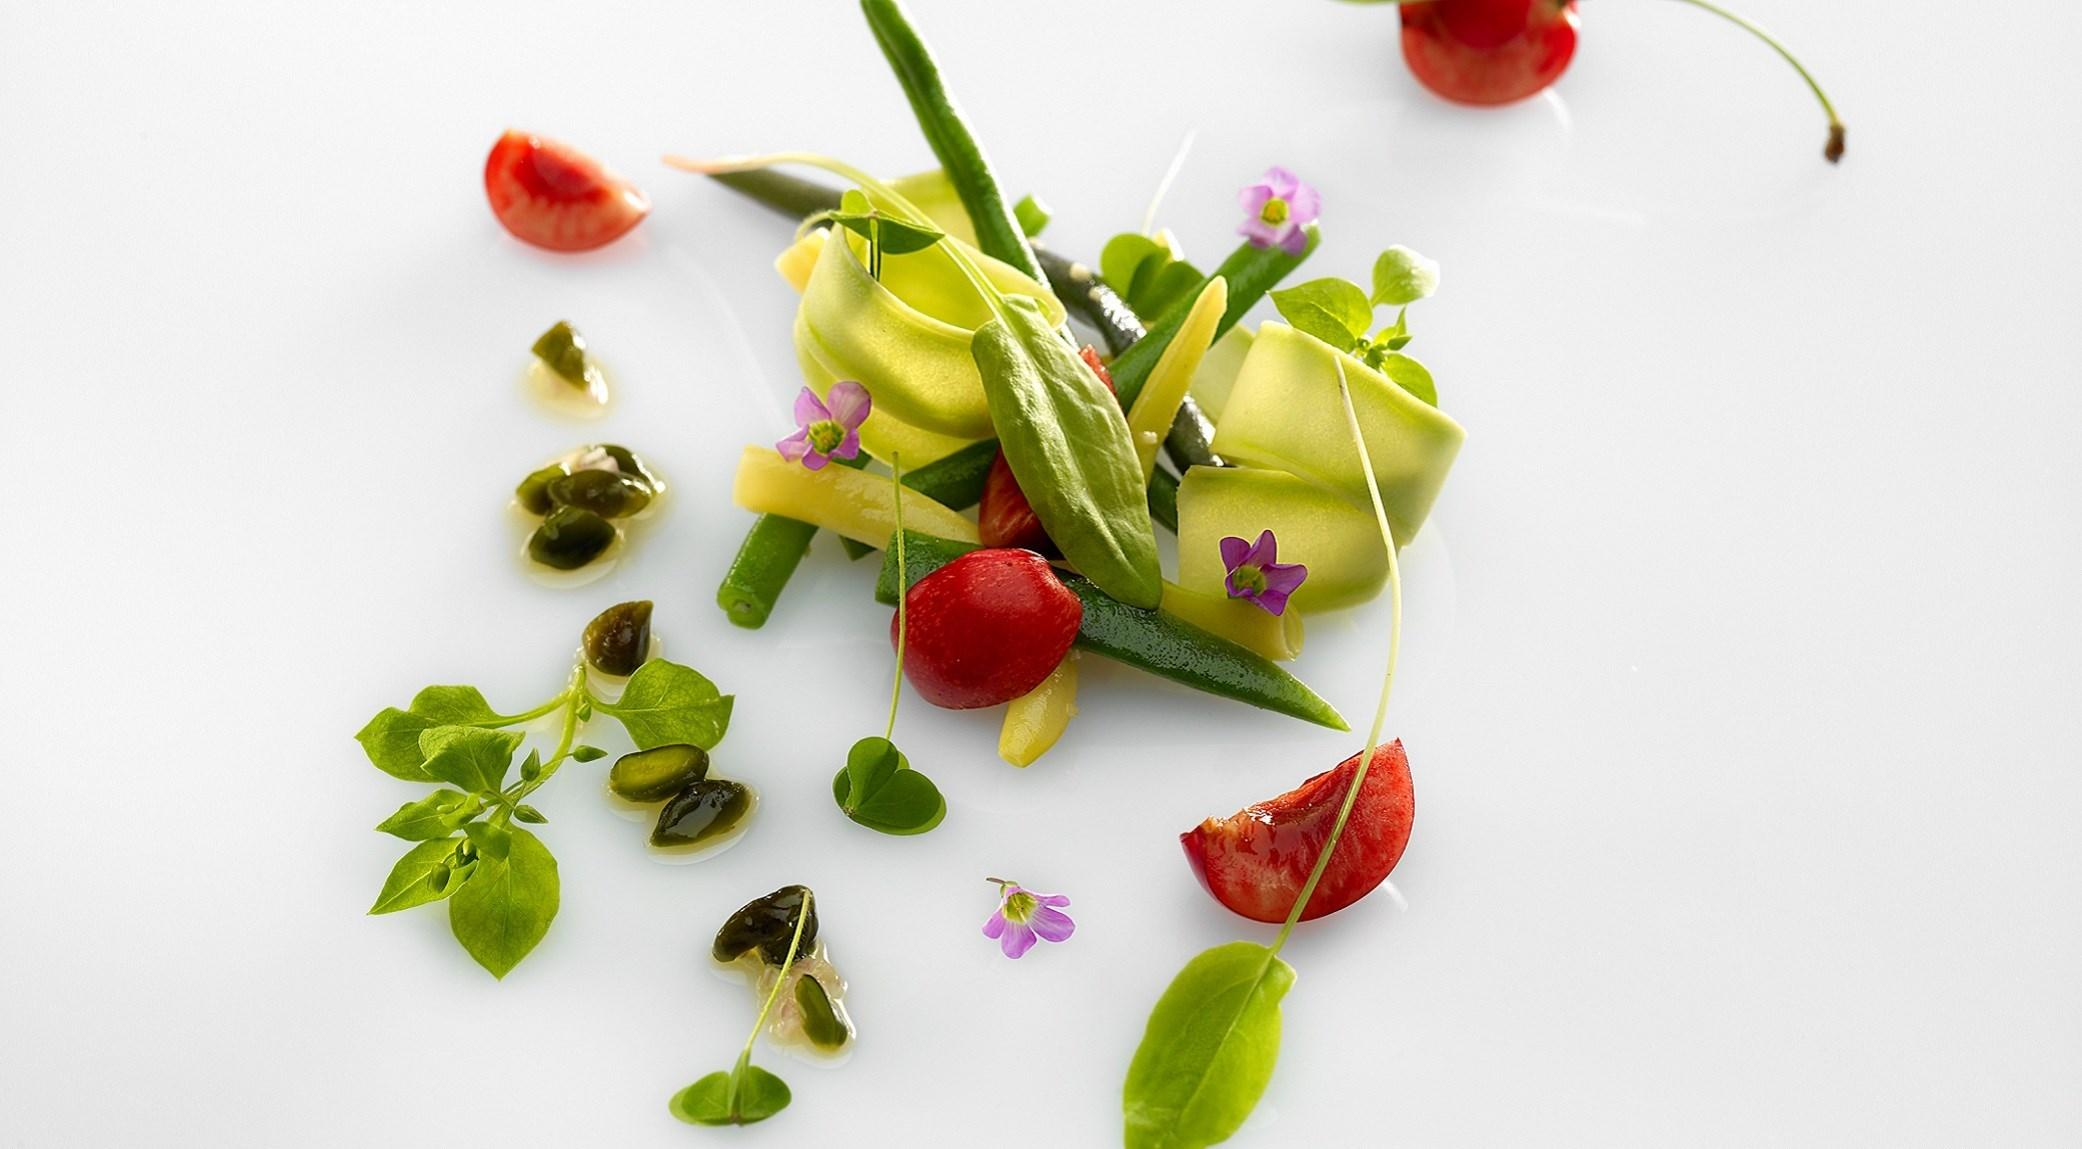 salade-haricots-et-cerise-colagreco